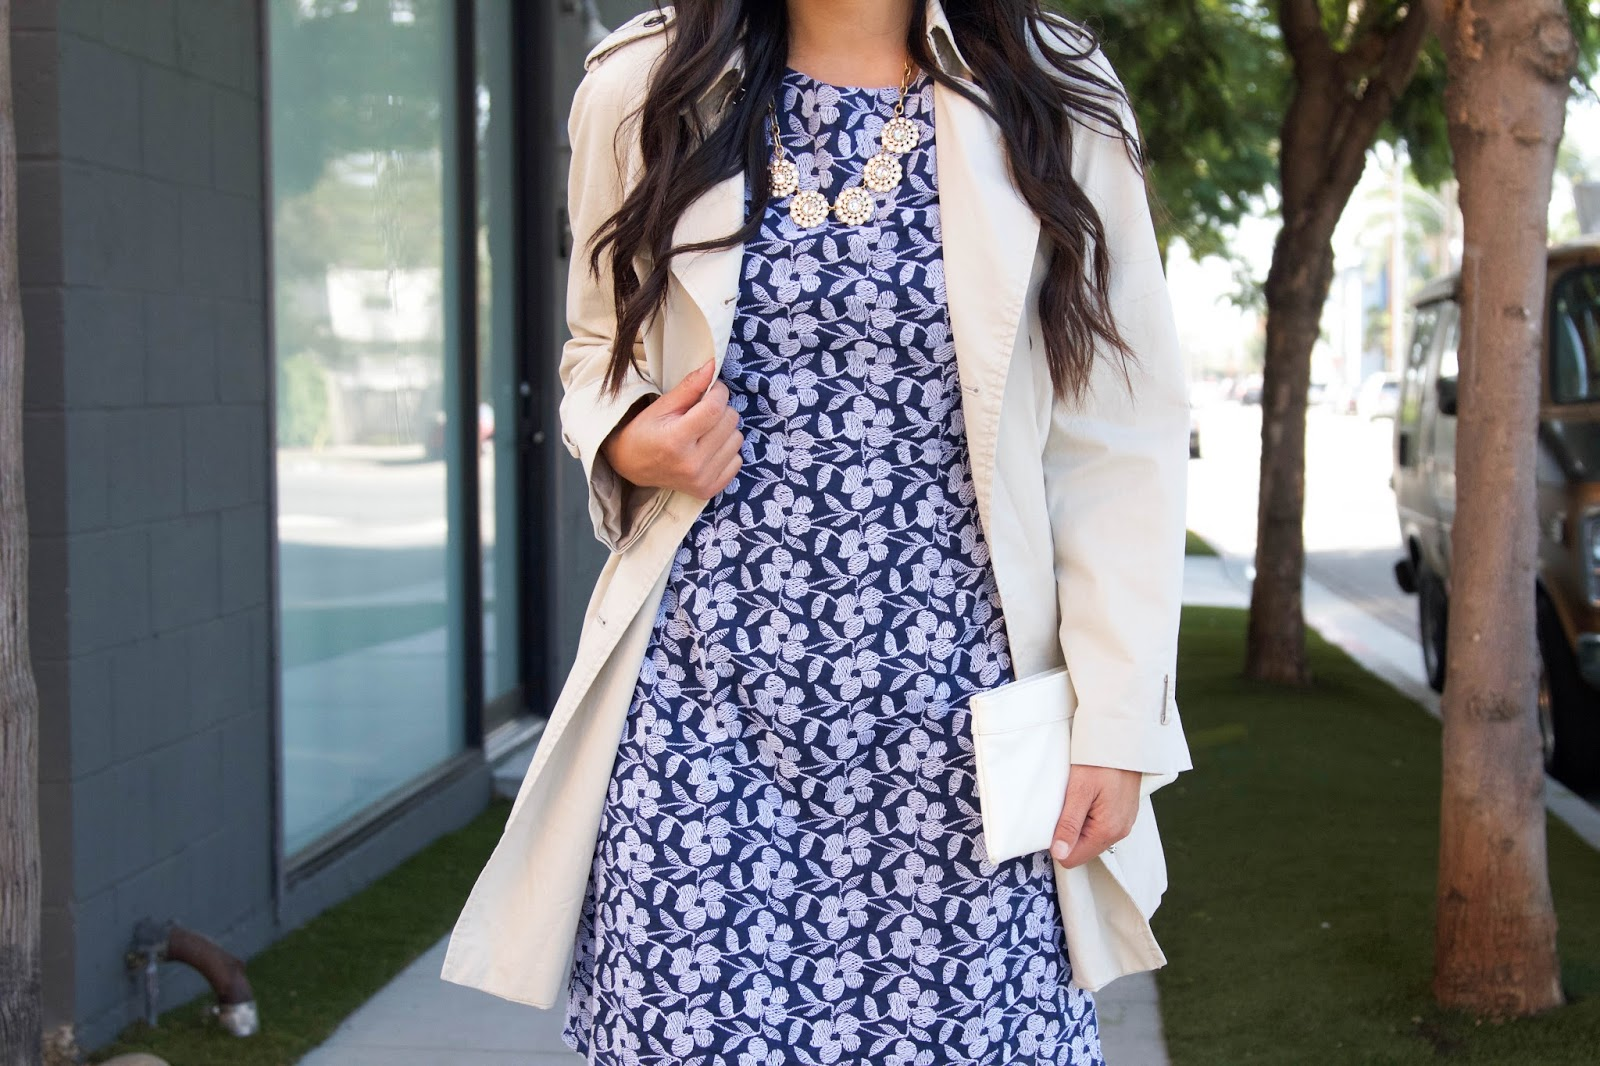 White Trench Coat + Statement Necklace + Blue Floral Dress